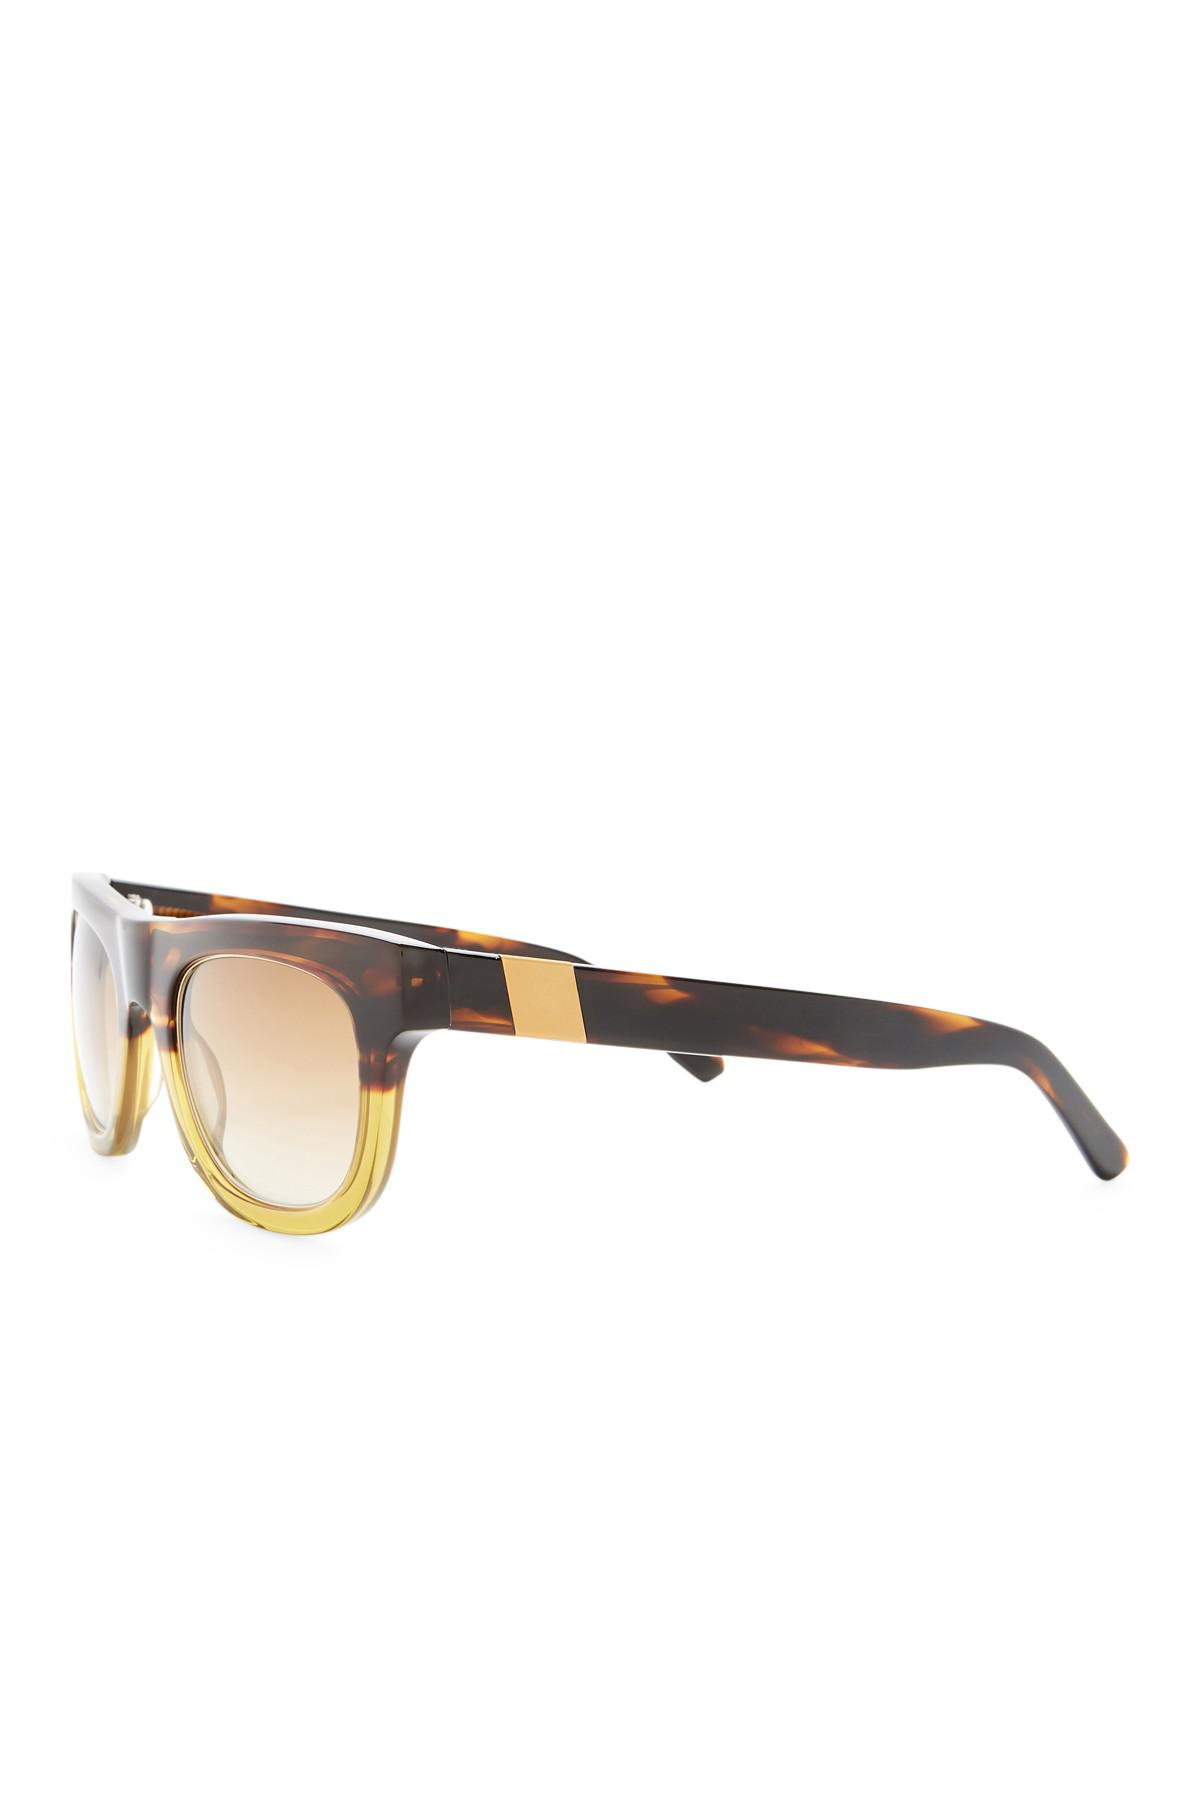 644e1973a6f Lyst - Westward Leaning Pharaoh Oversized Sunglasses in Brown